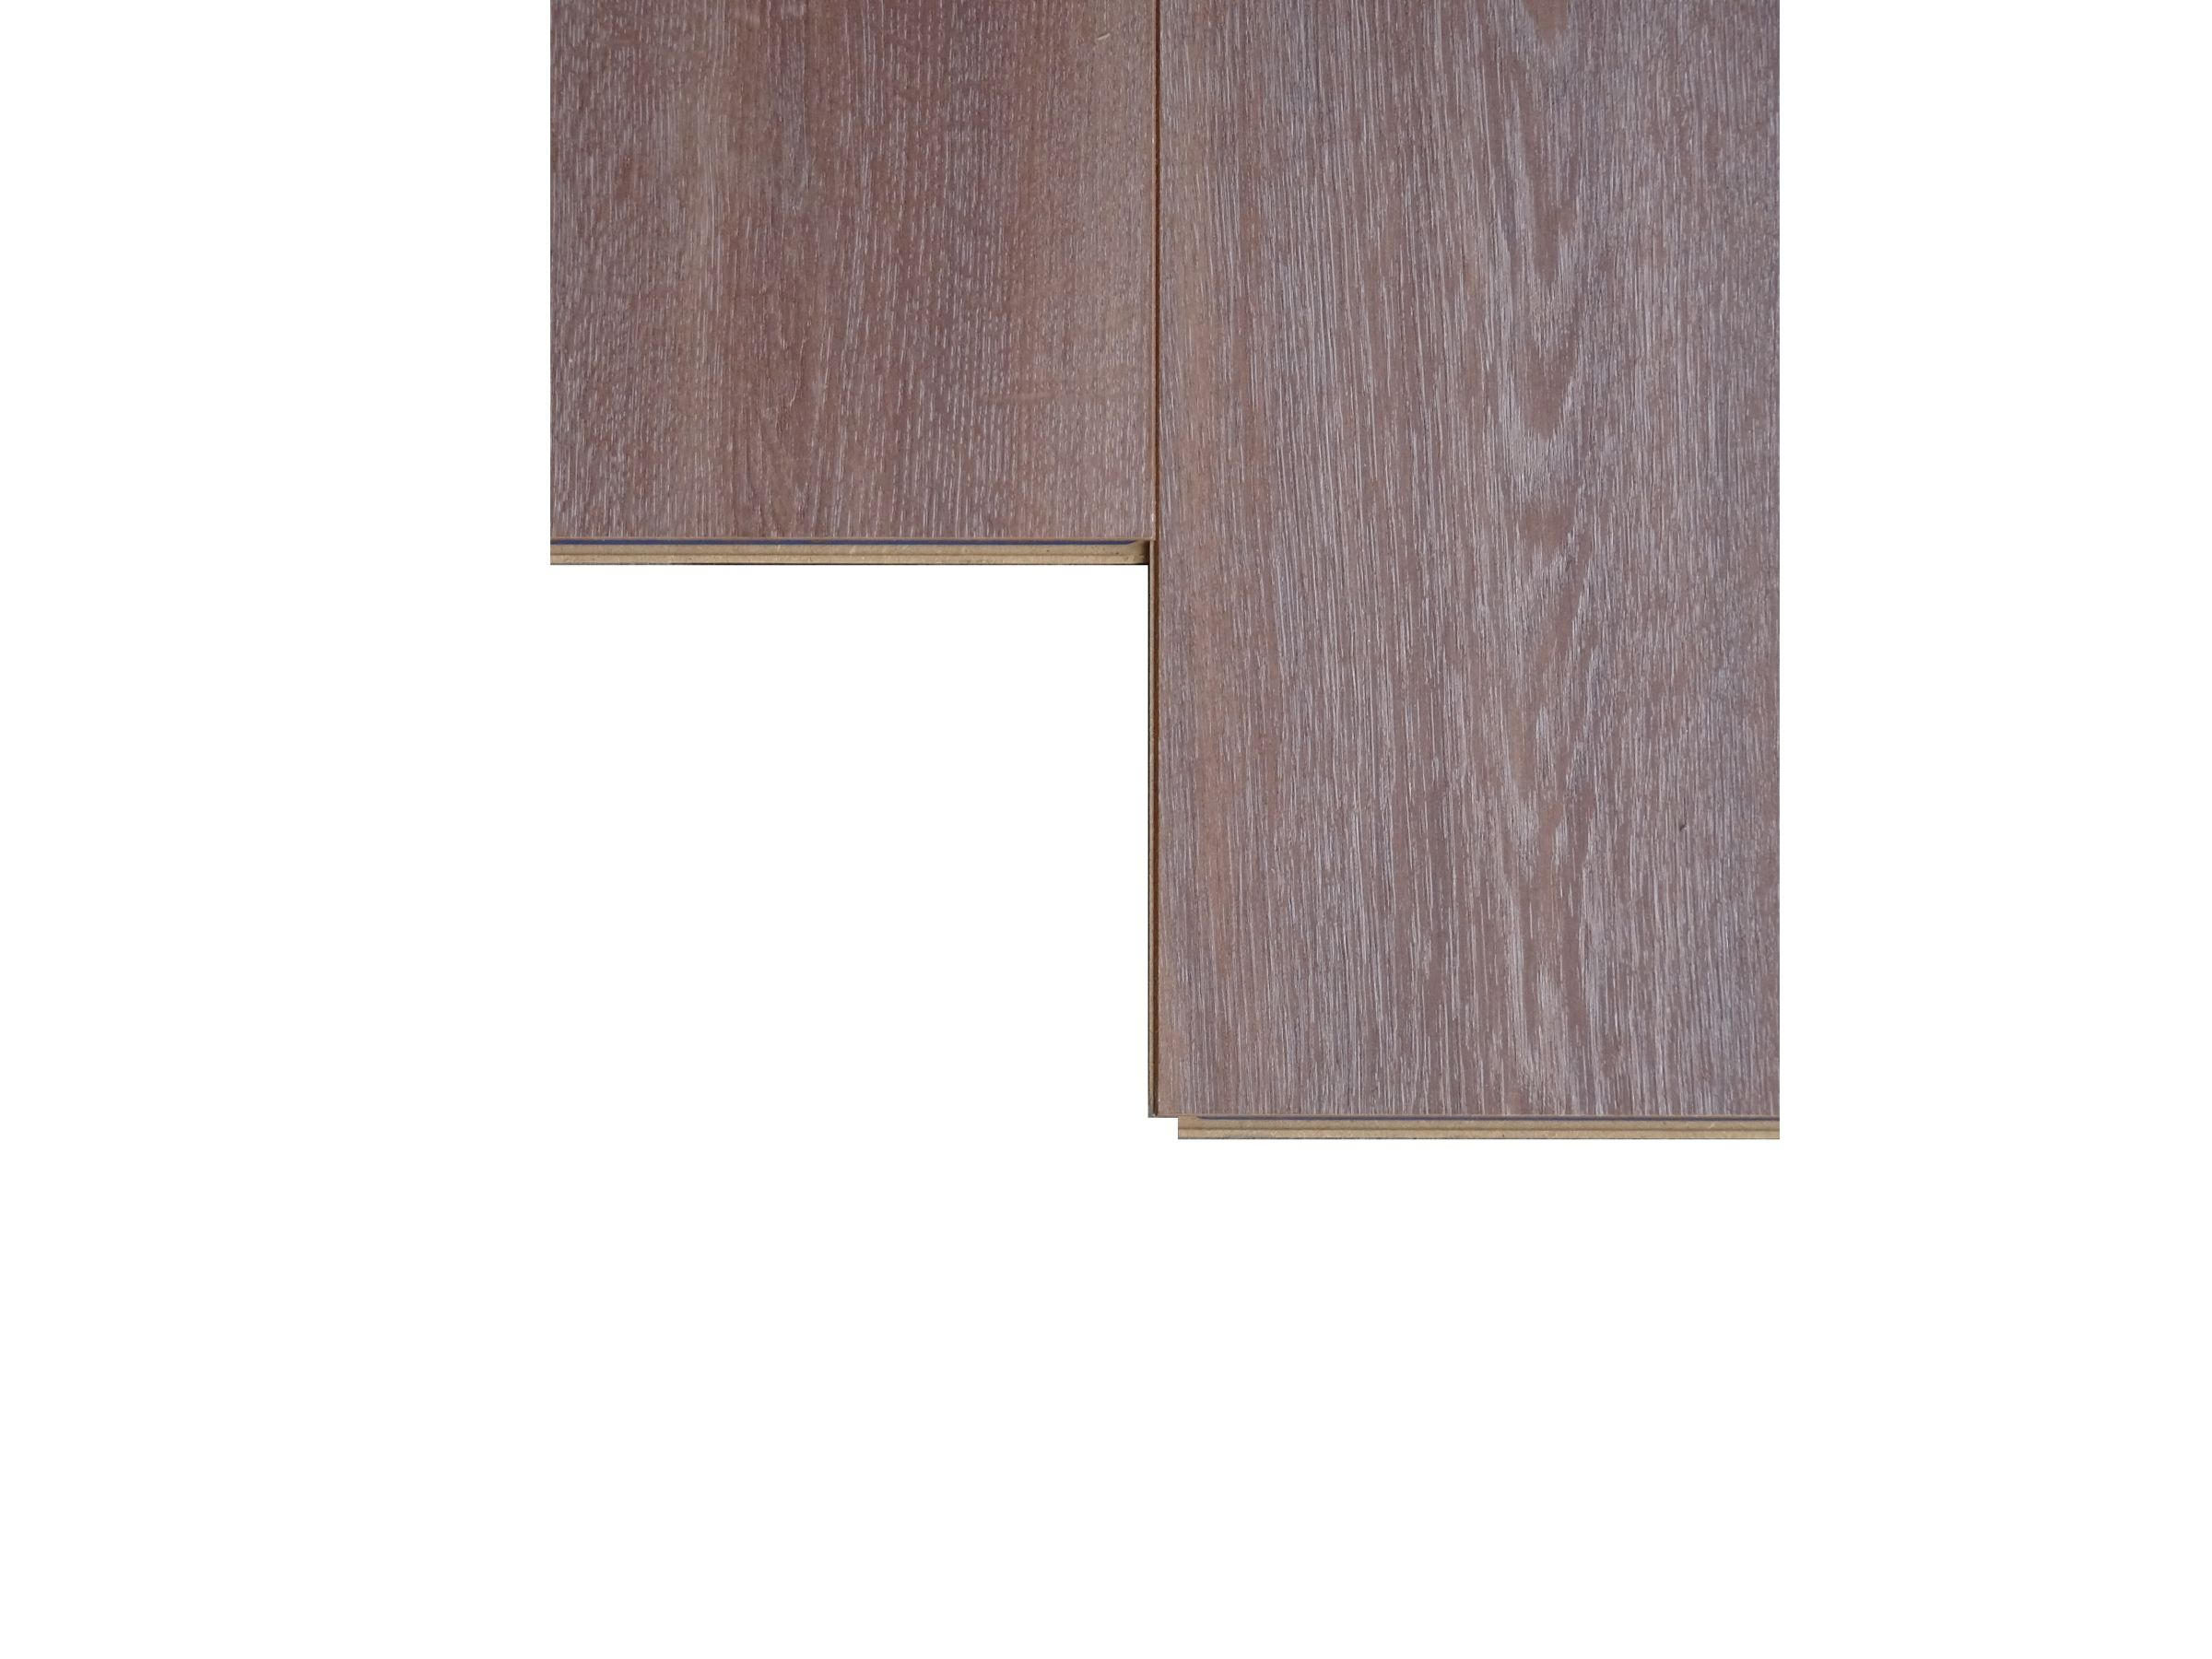 $ 6.990 m2 c/Iva Piso flotante Stirling Oak Pure (2.13 m2) KRONOTEX